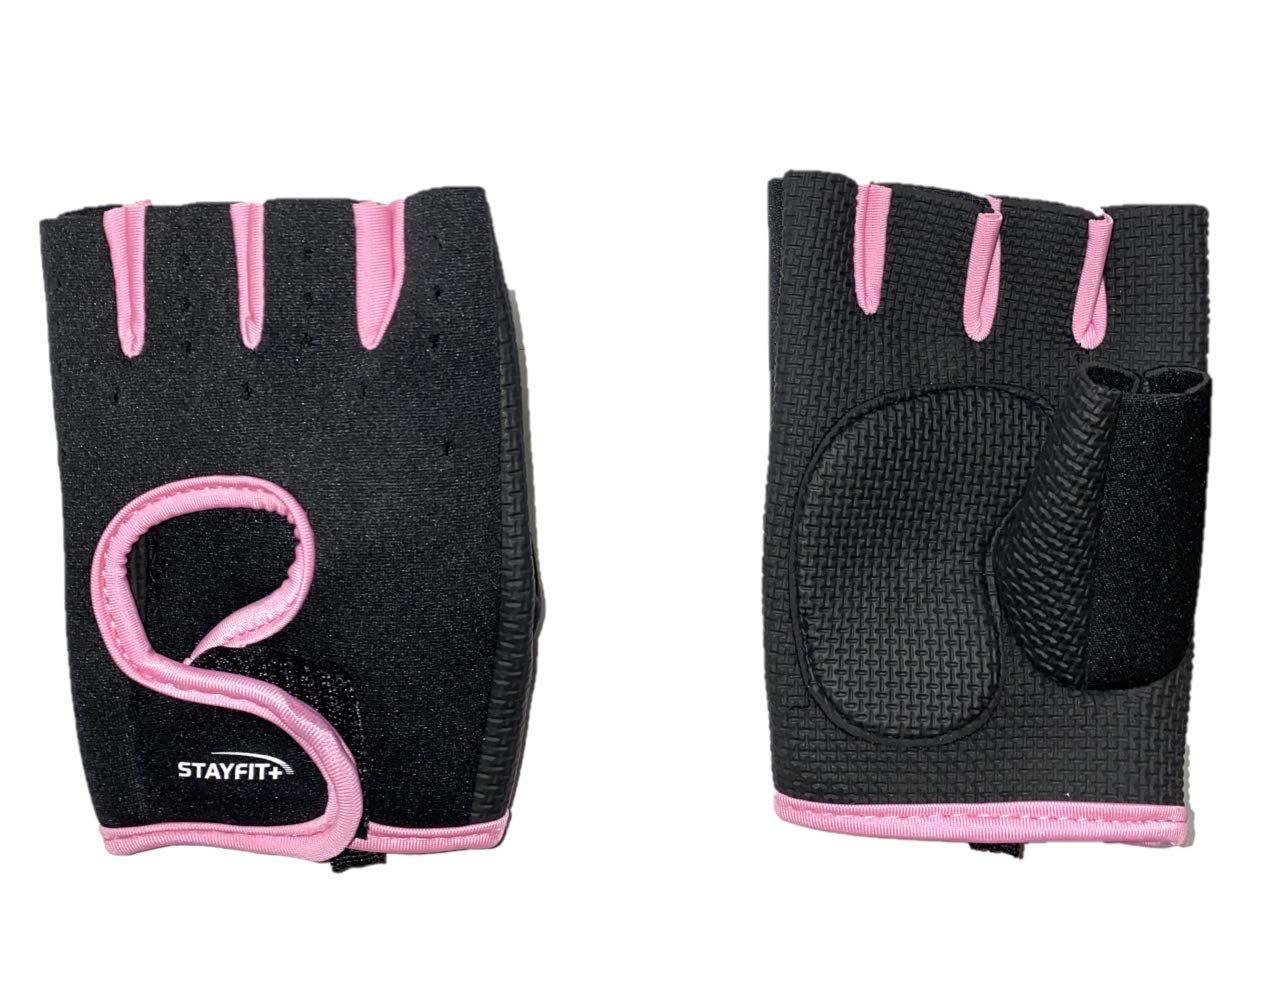 High Quality Gym Gloves For Men Women Workout Gloves Mitten Fitness Accessories